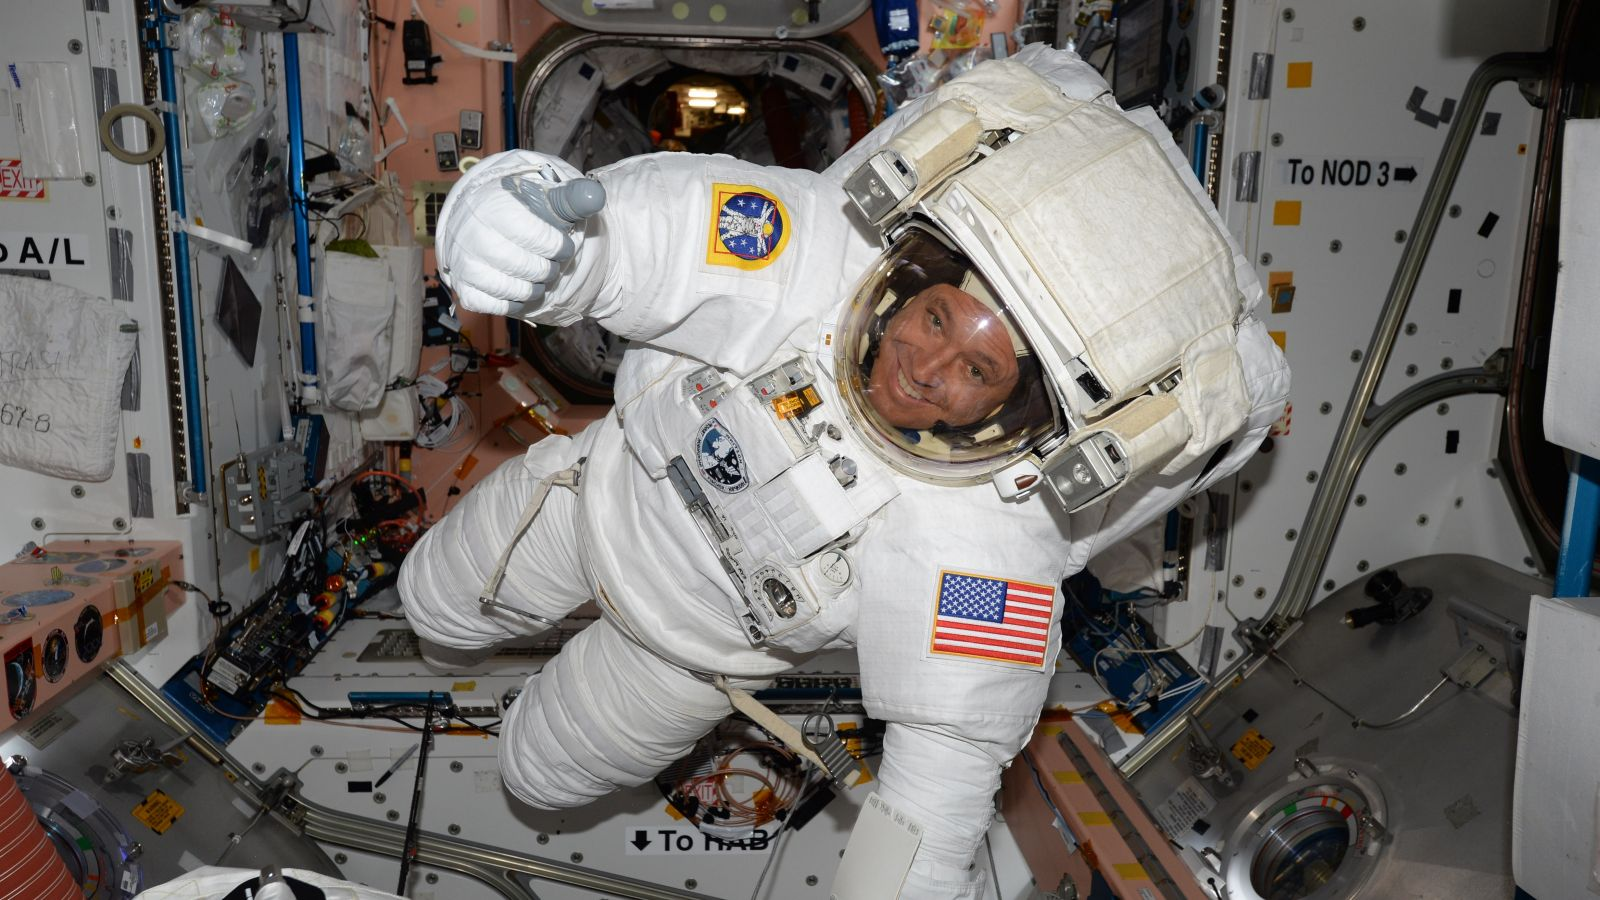 U.S. spacewalkers overcome glitch on 200th station outing